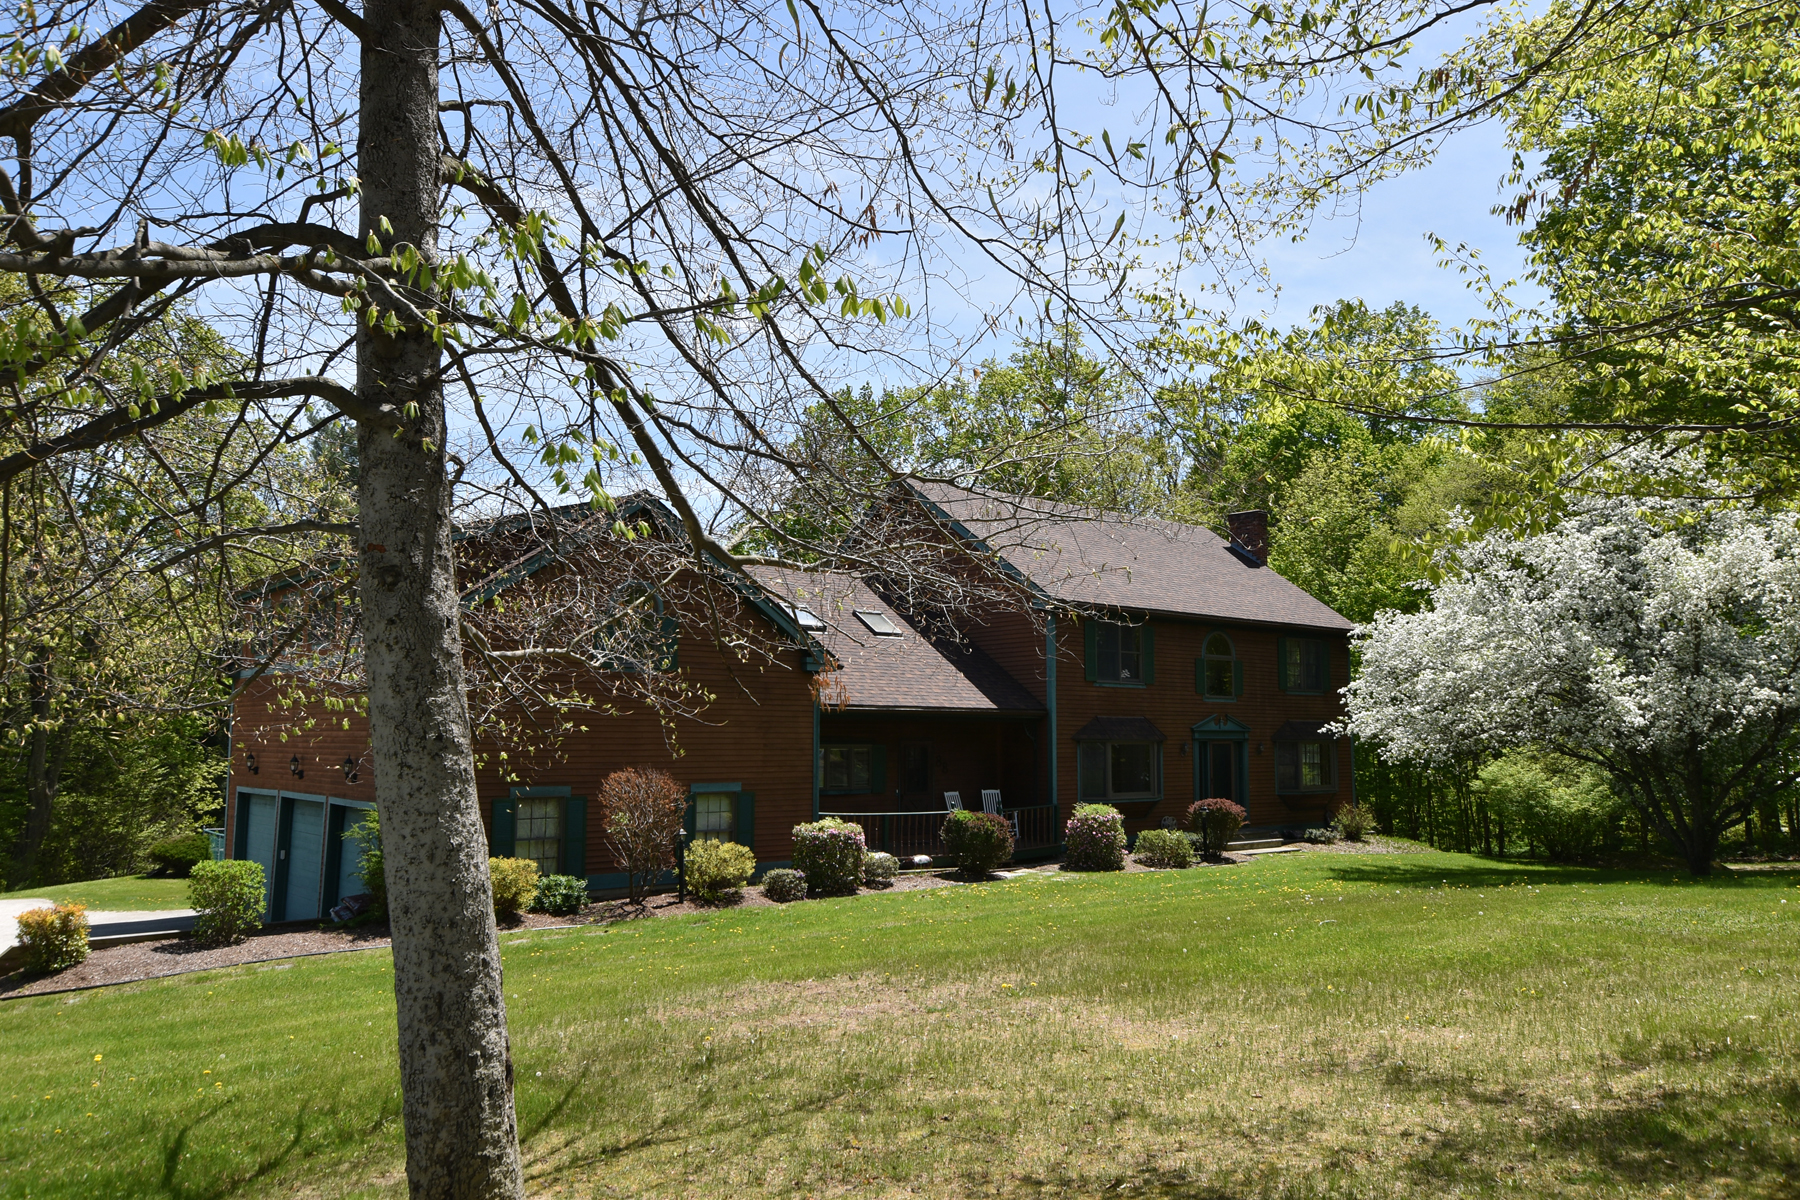 Single Family Home for Sale at PREMIERE RUTLAND TOWN LOCATION-IN GROUND POOL 88 Chaffee Ridge Pl Rutland Town, Vermont 05701 United States